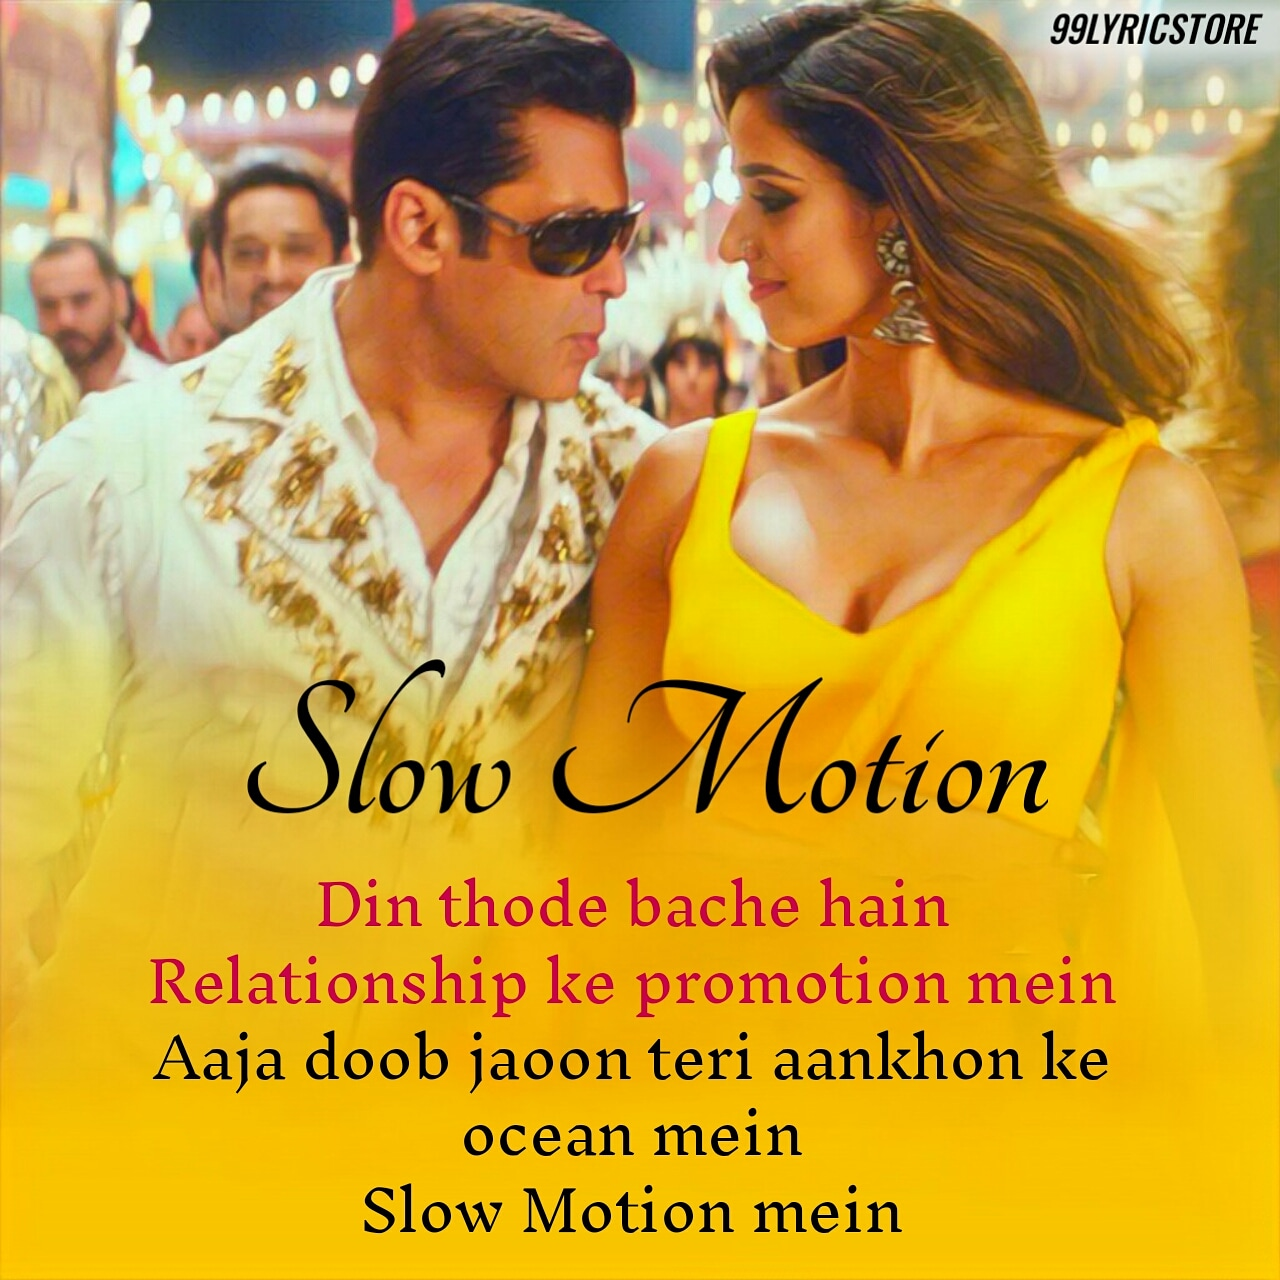 Slow Motion song lyrics from movie Bharat Salman Khan and Disha Patani